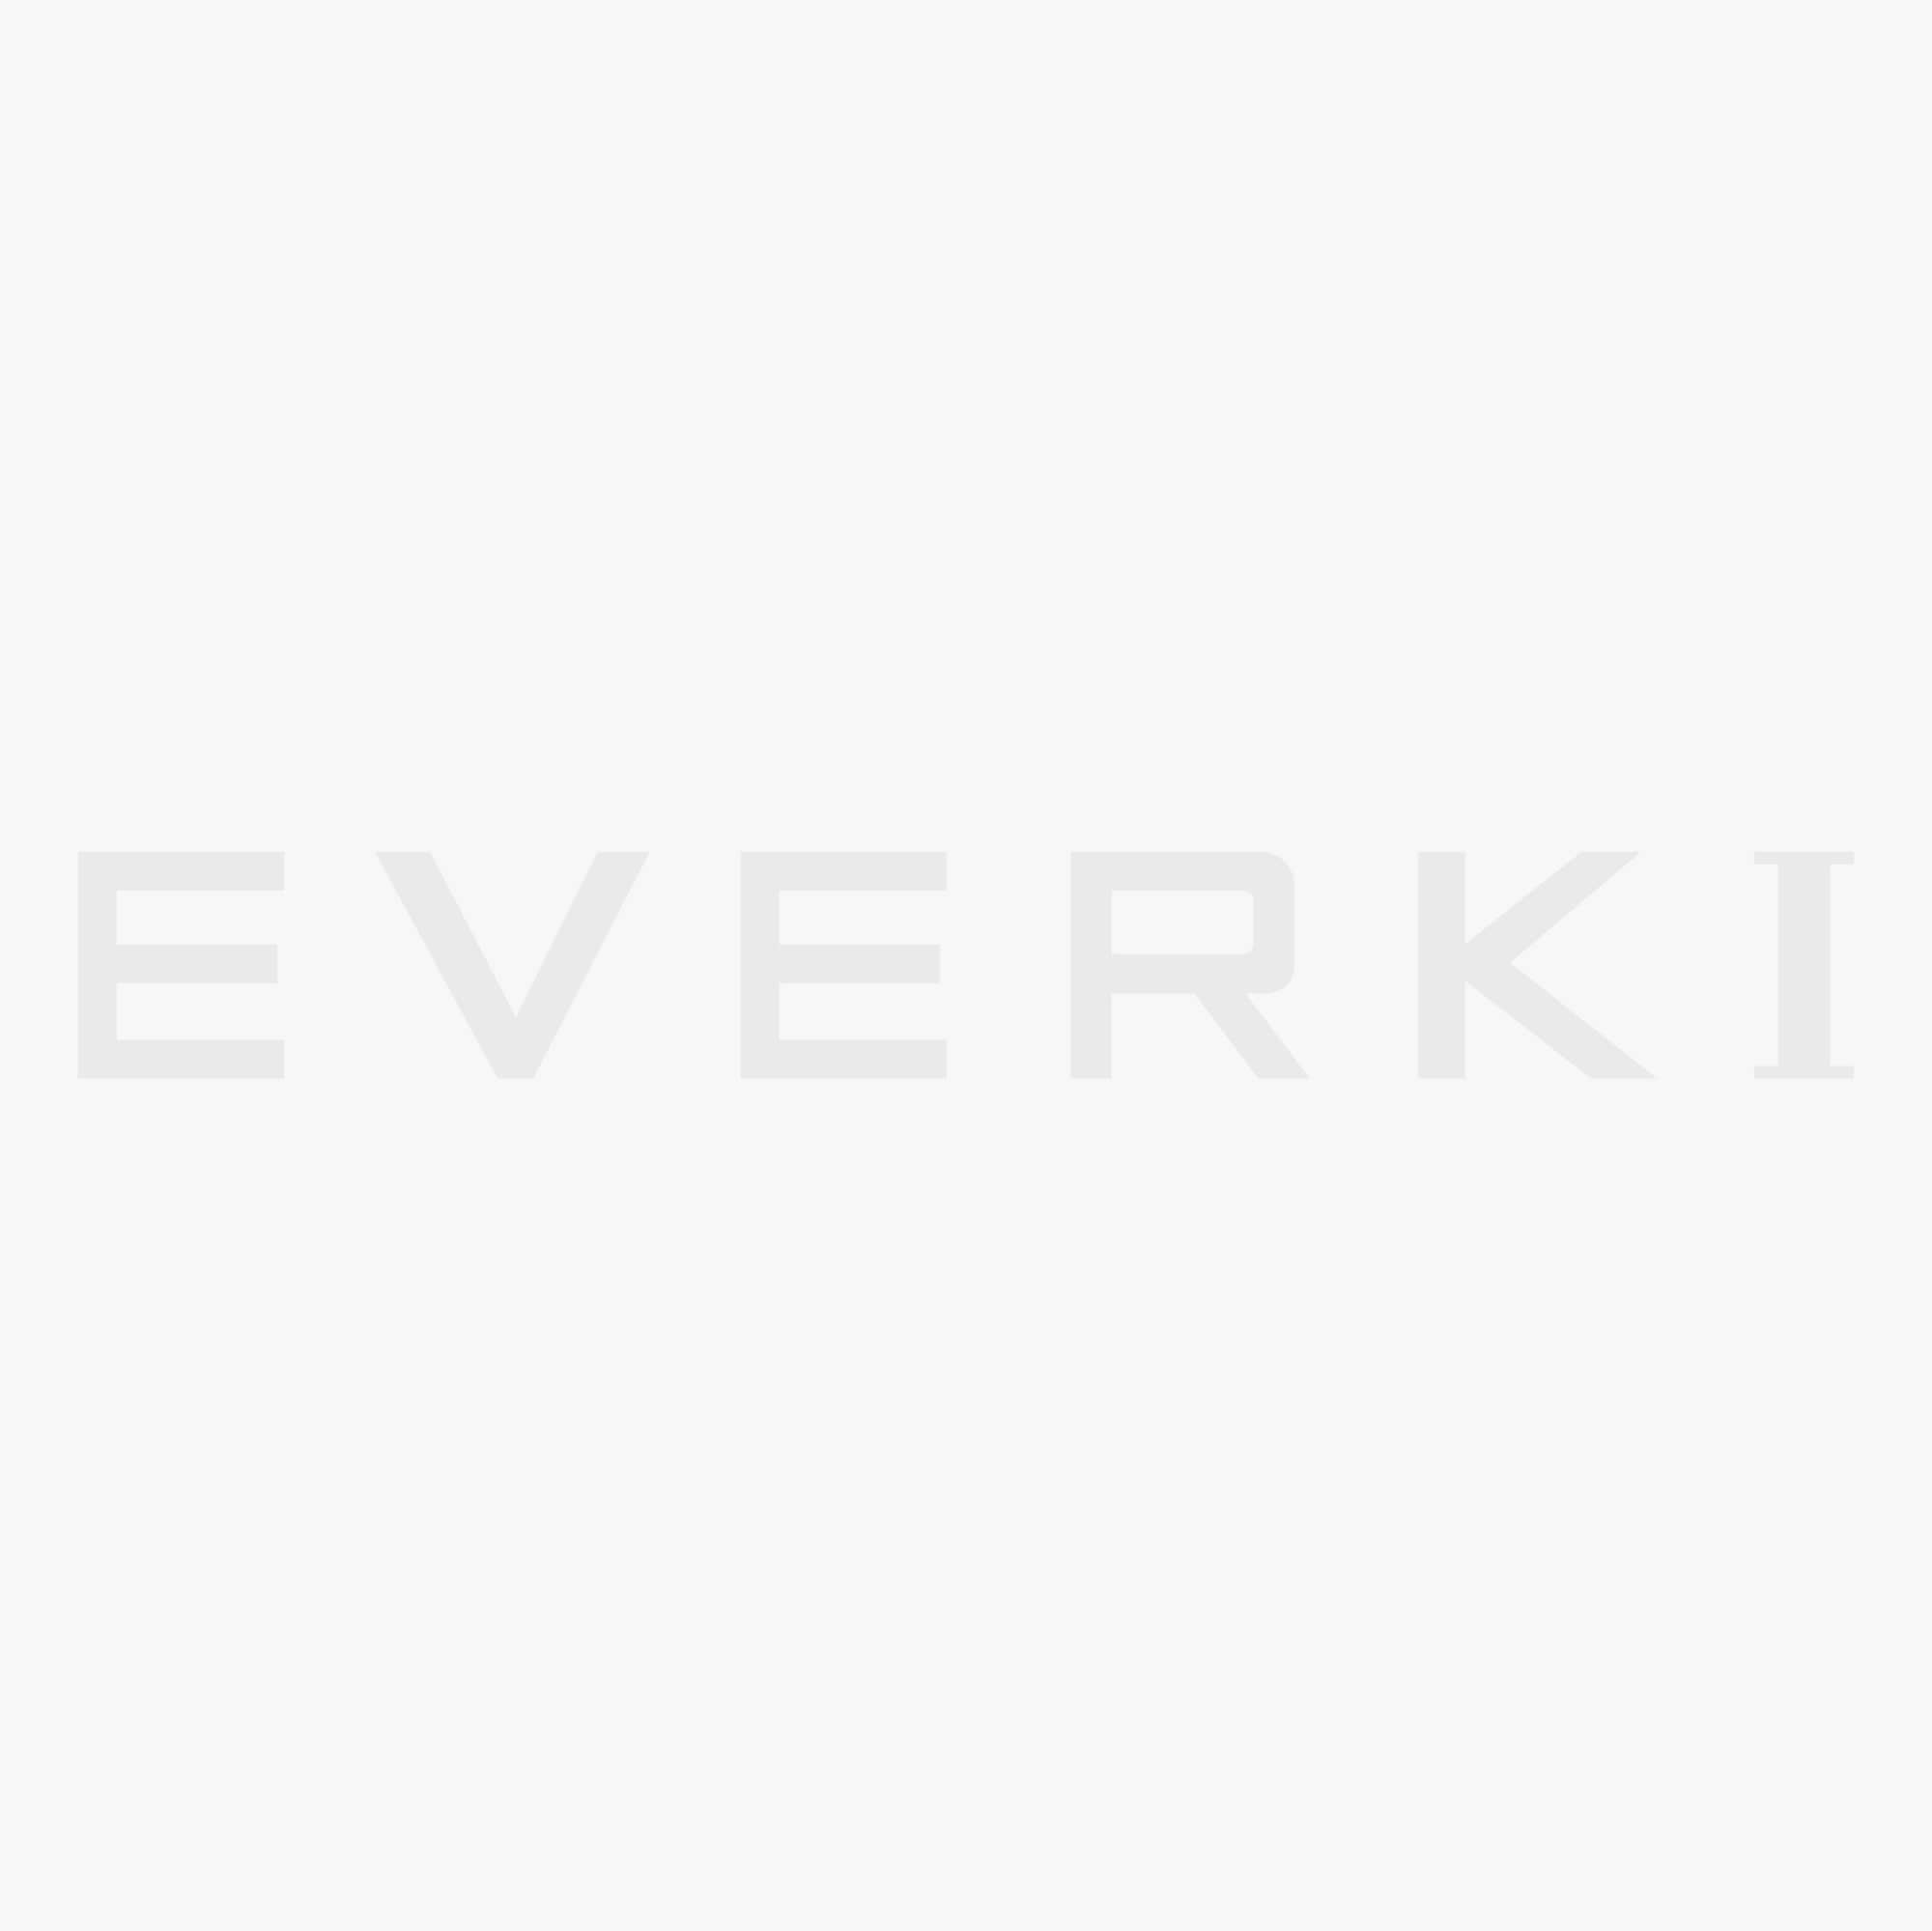 EVERKI Commute 18 Inch Laptop Sleeve